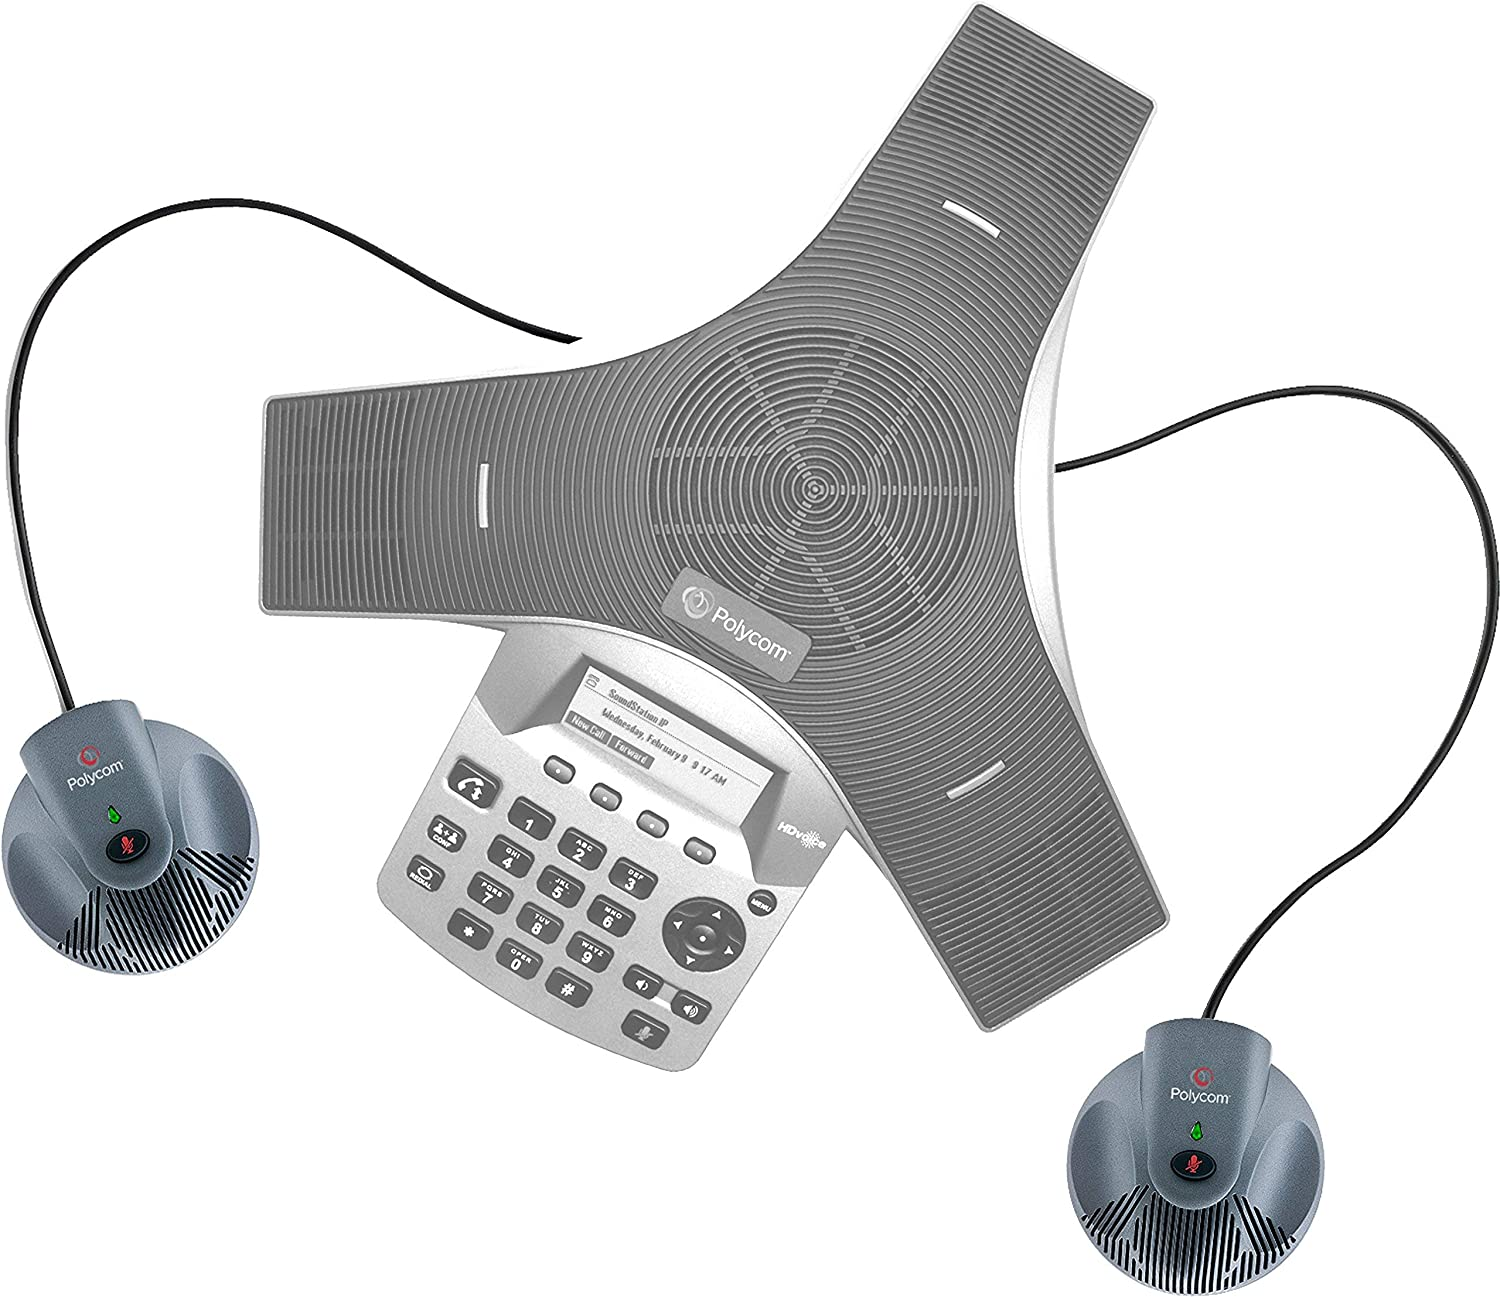 Polycom Extension Mics for CX3000 and Duo Renewed 2200-15855-001